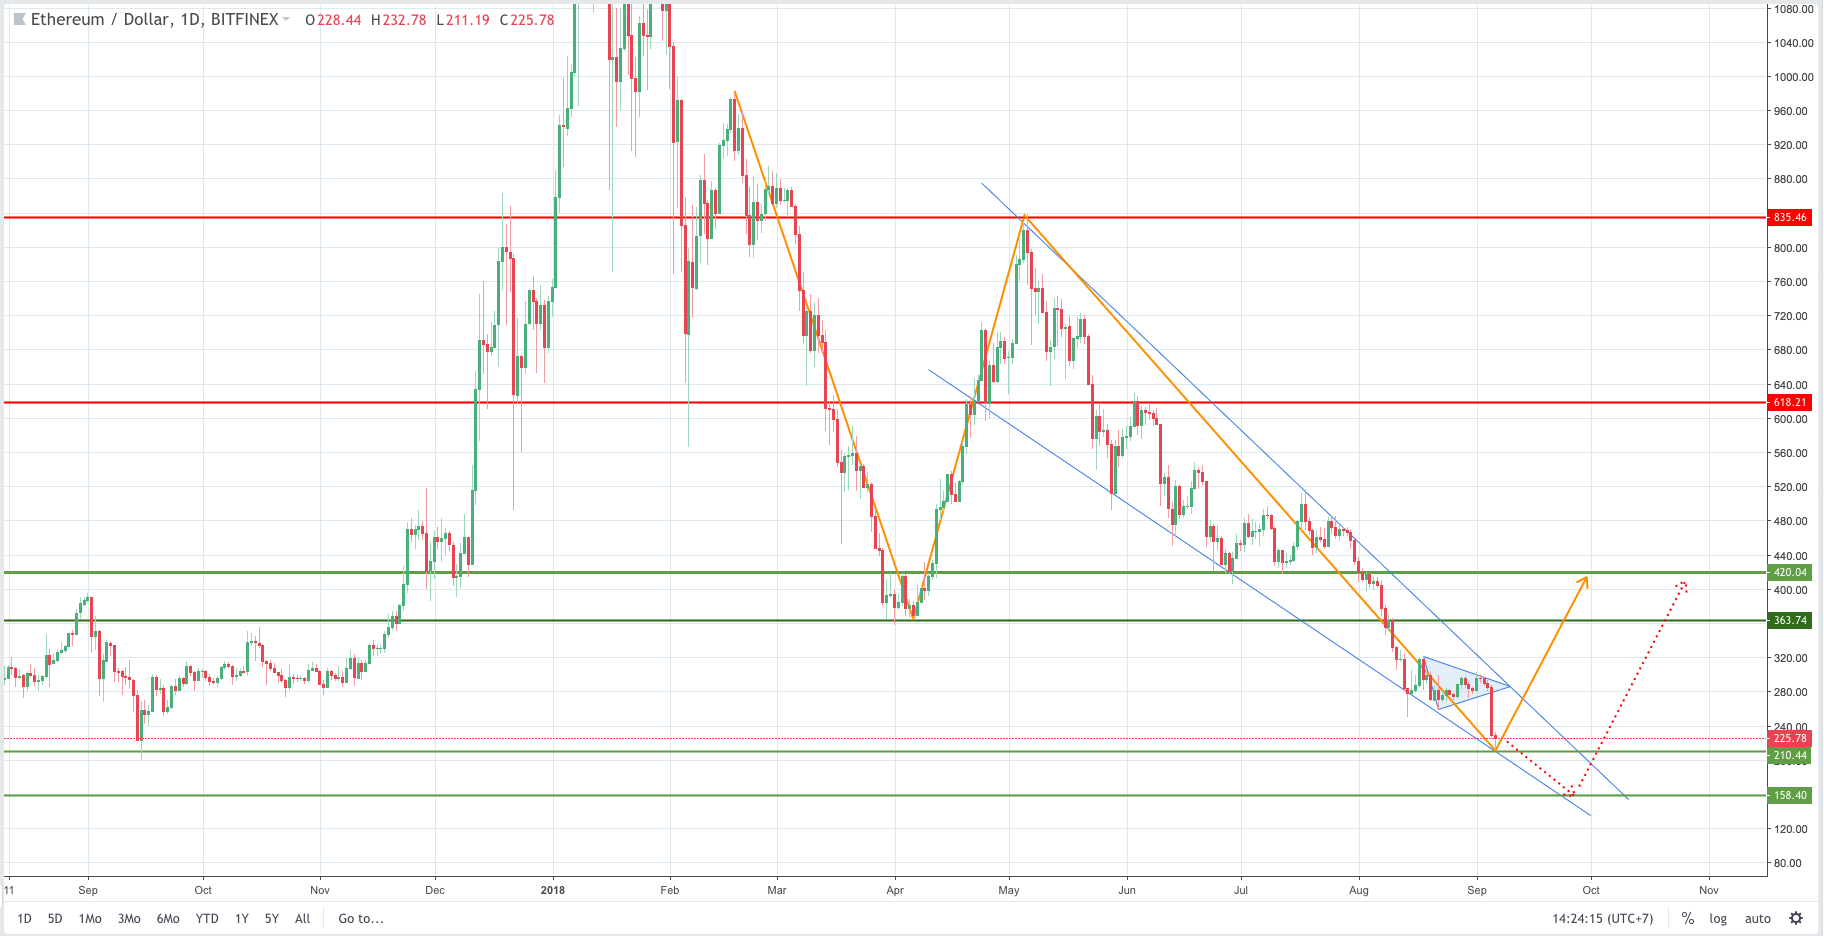 ethereum analysis and forecast,  ethereum analysis, ethereum forecast,  eth,  ethusd, cryptocurrency